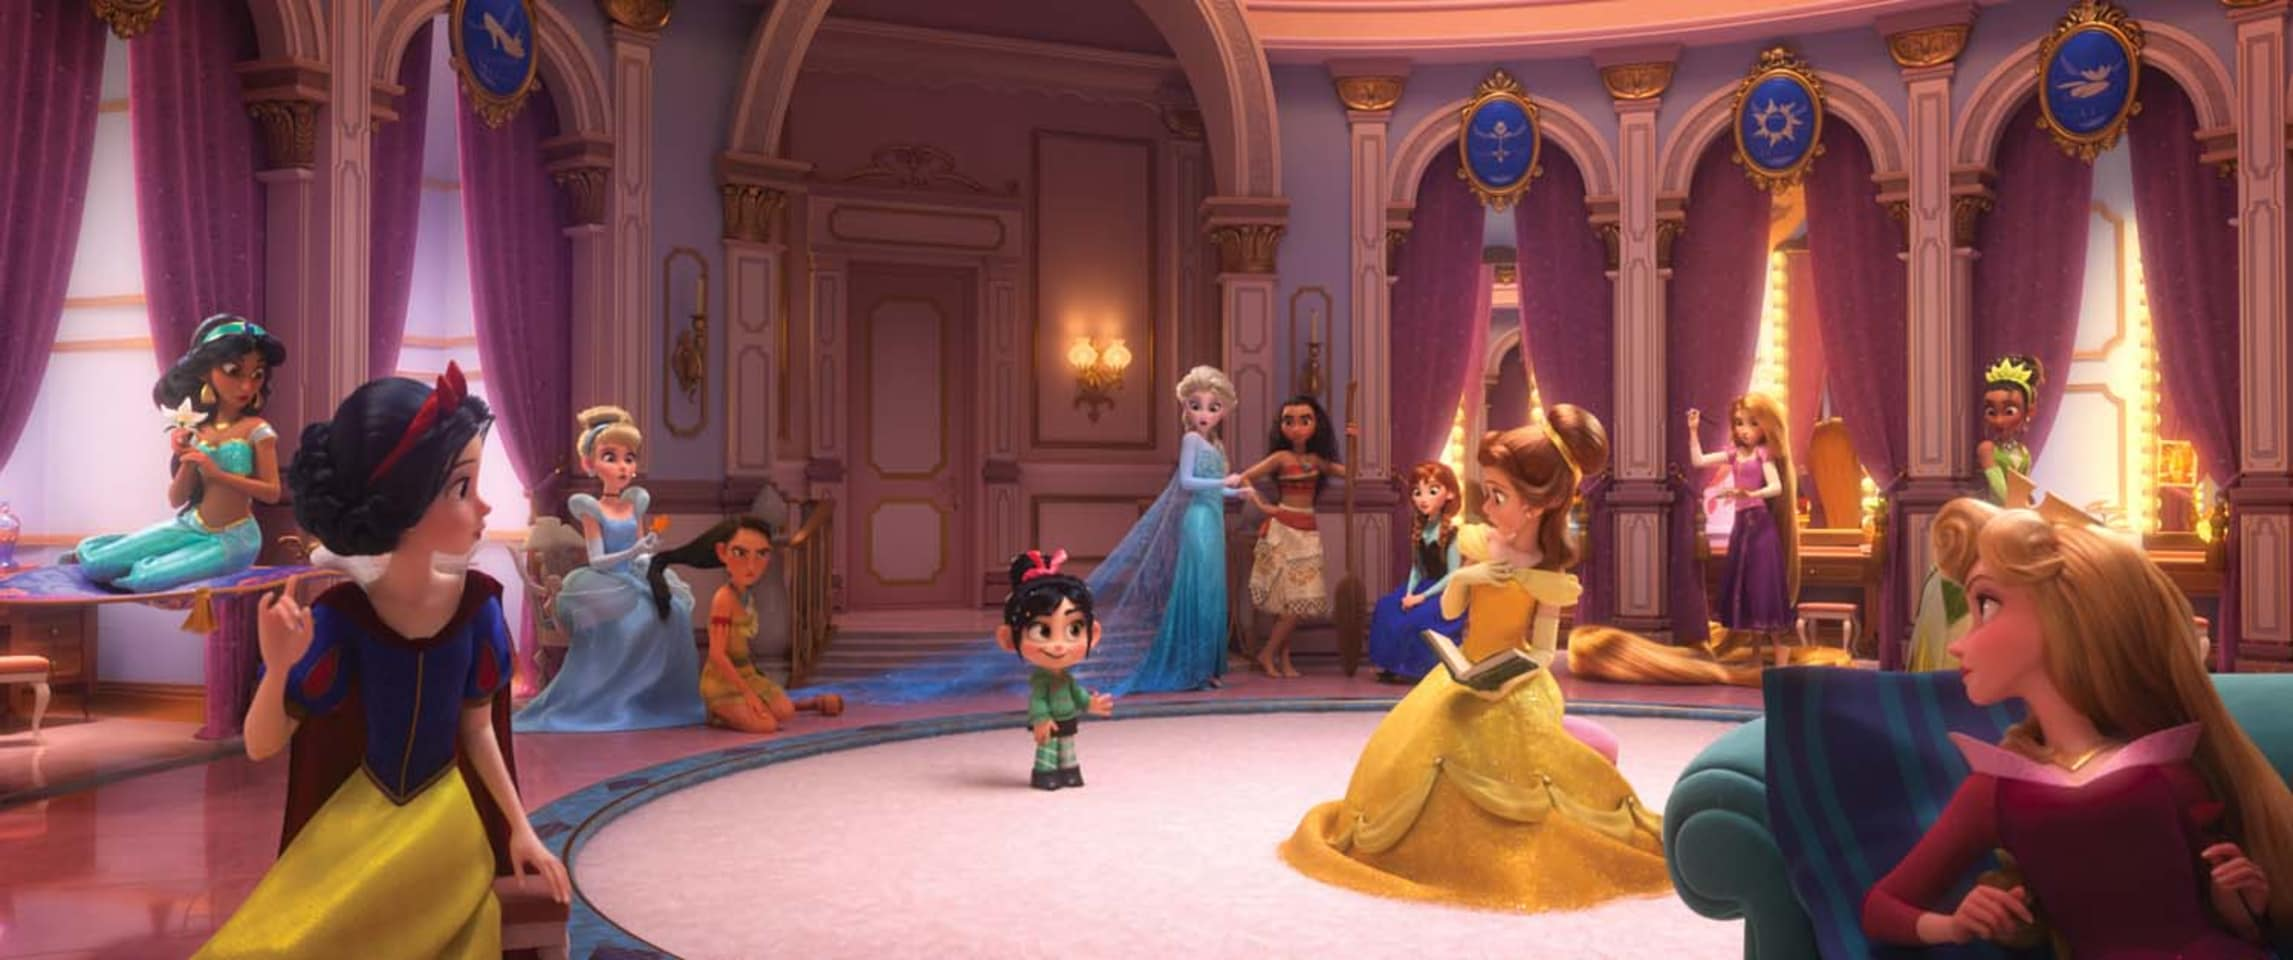 Vanellope meets the Disney princesses